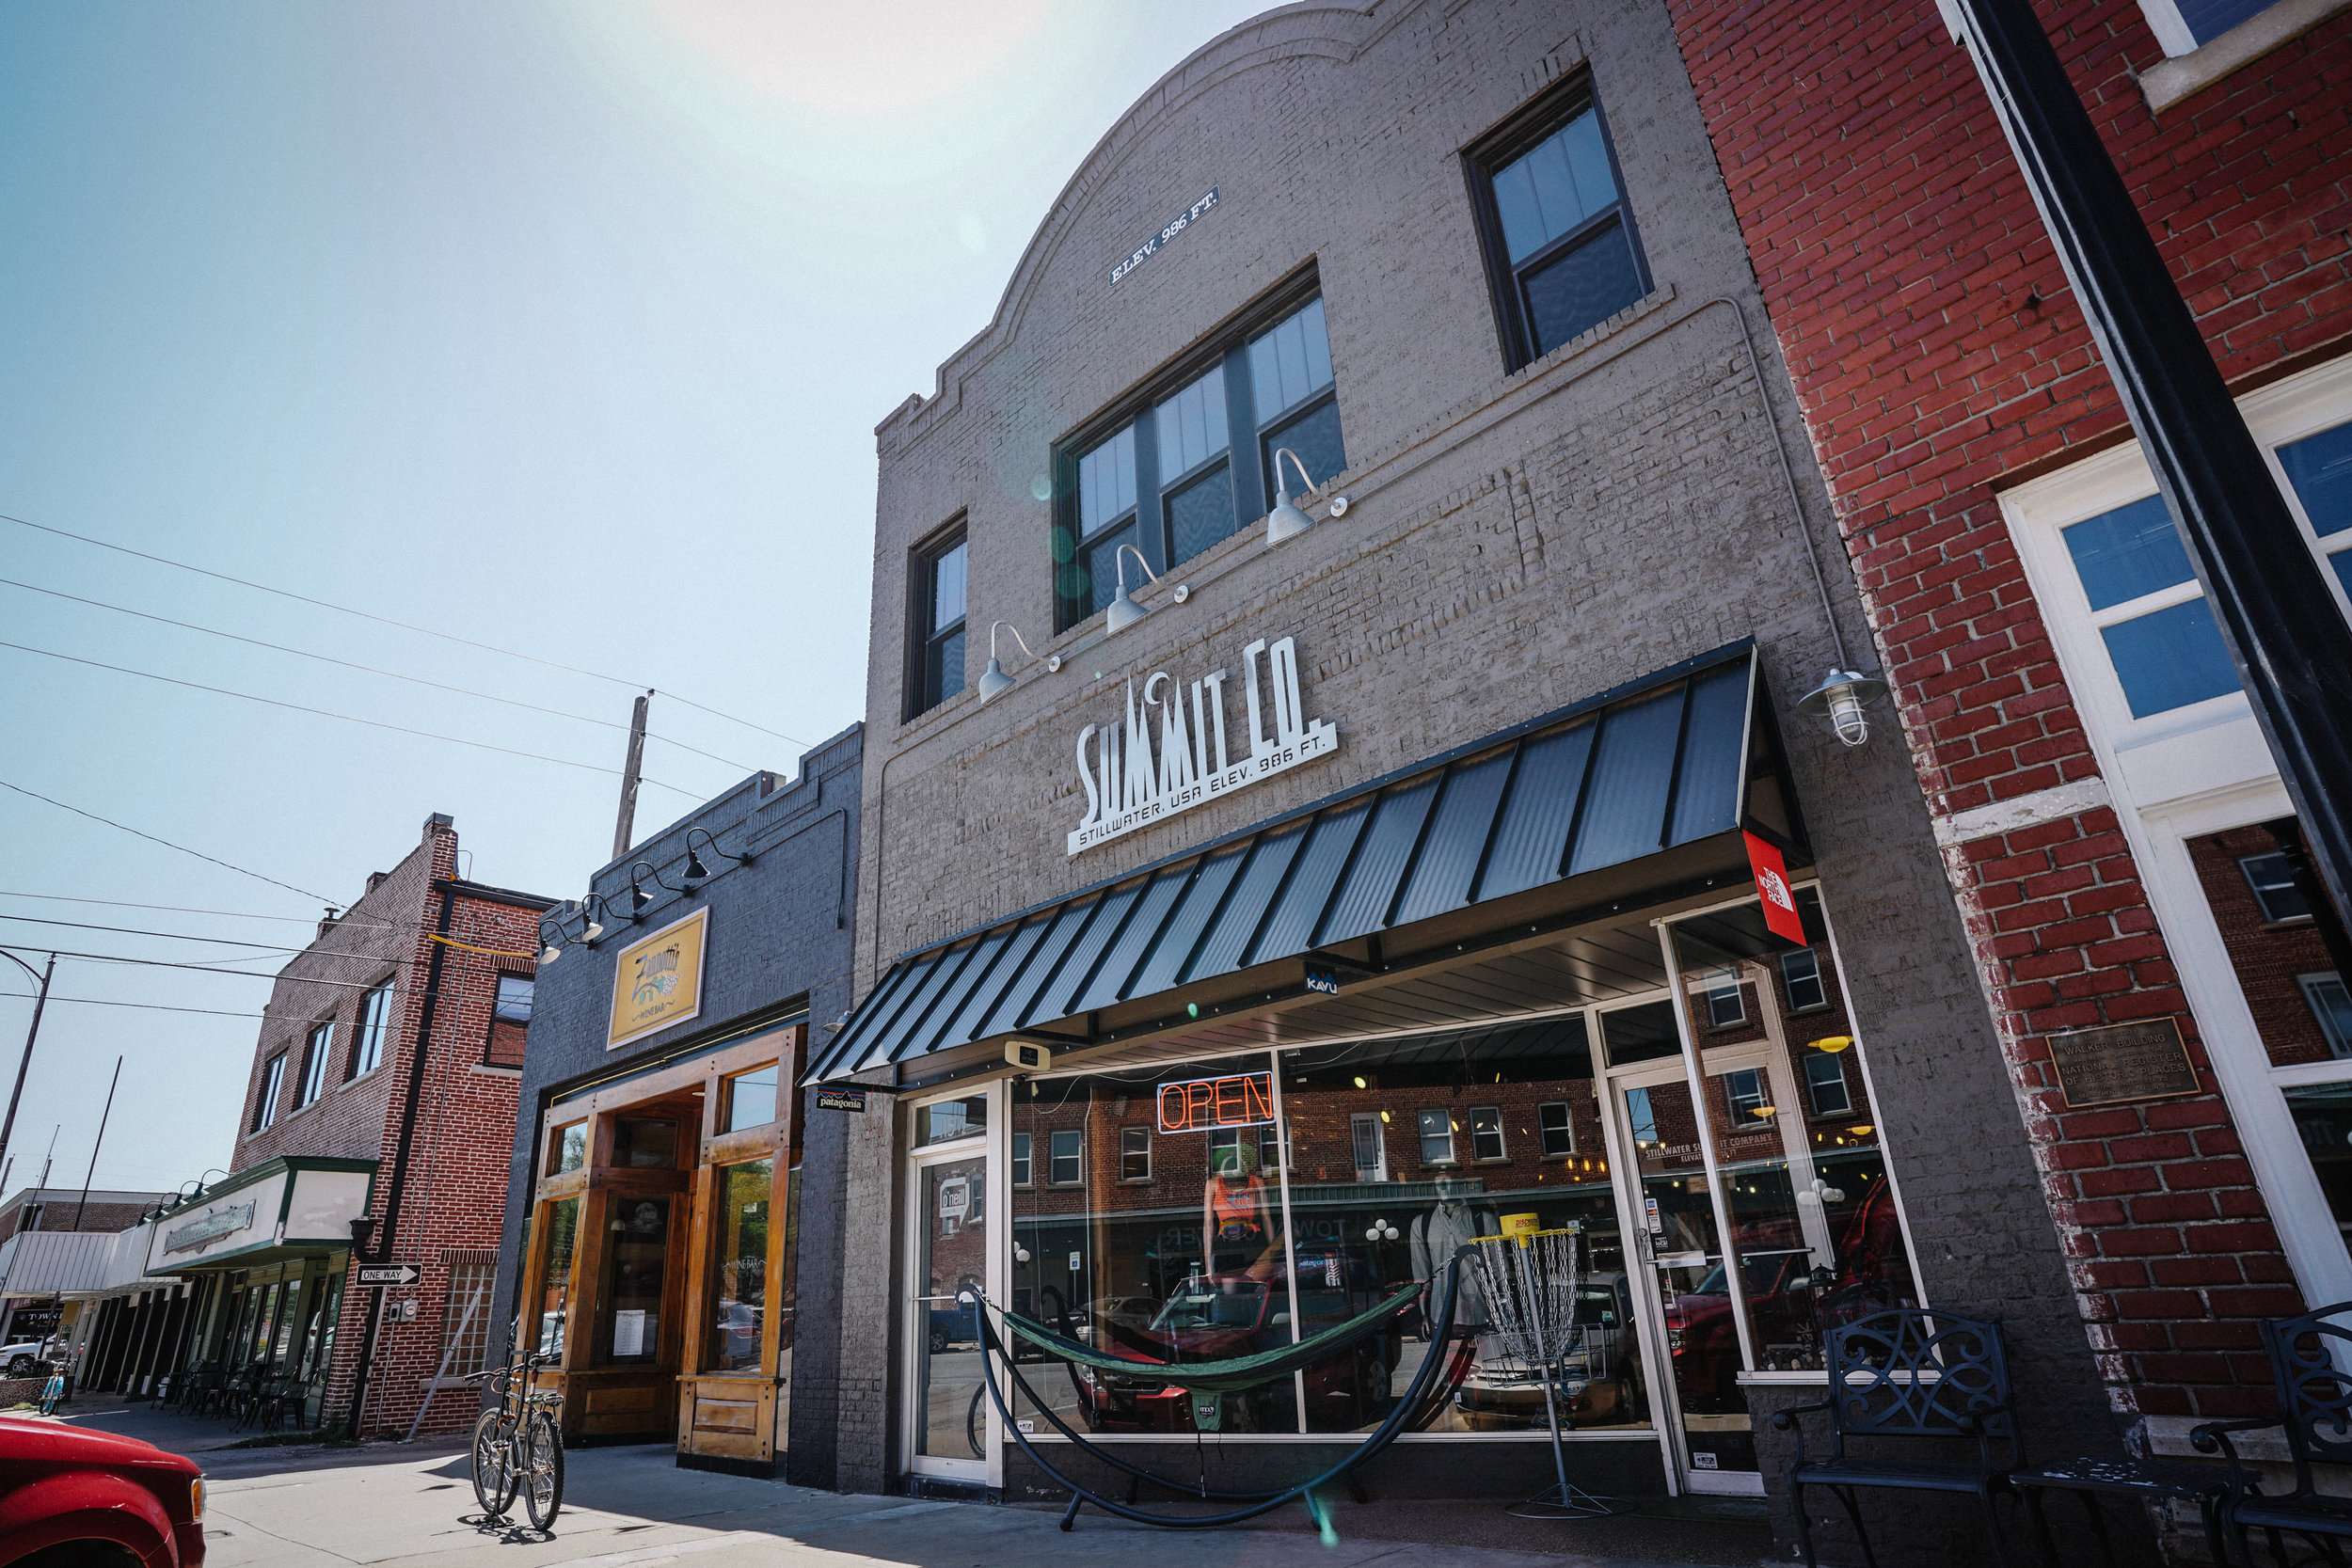 Summit's location since 2005 - Downtown Stillwater on 7th Ave.